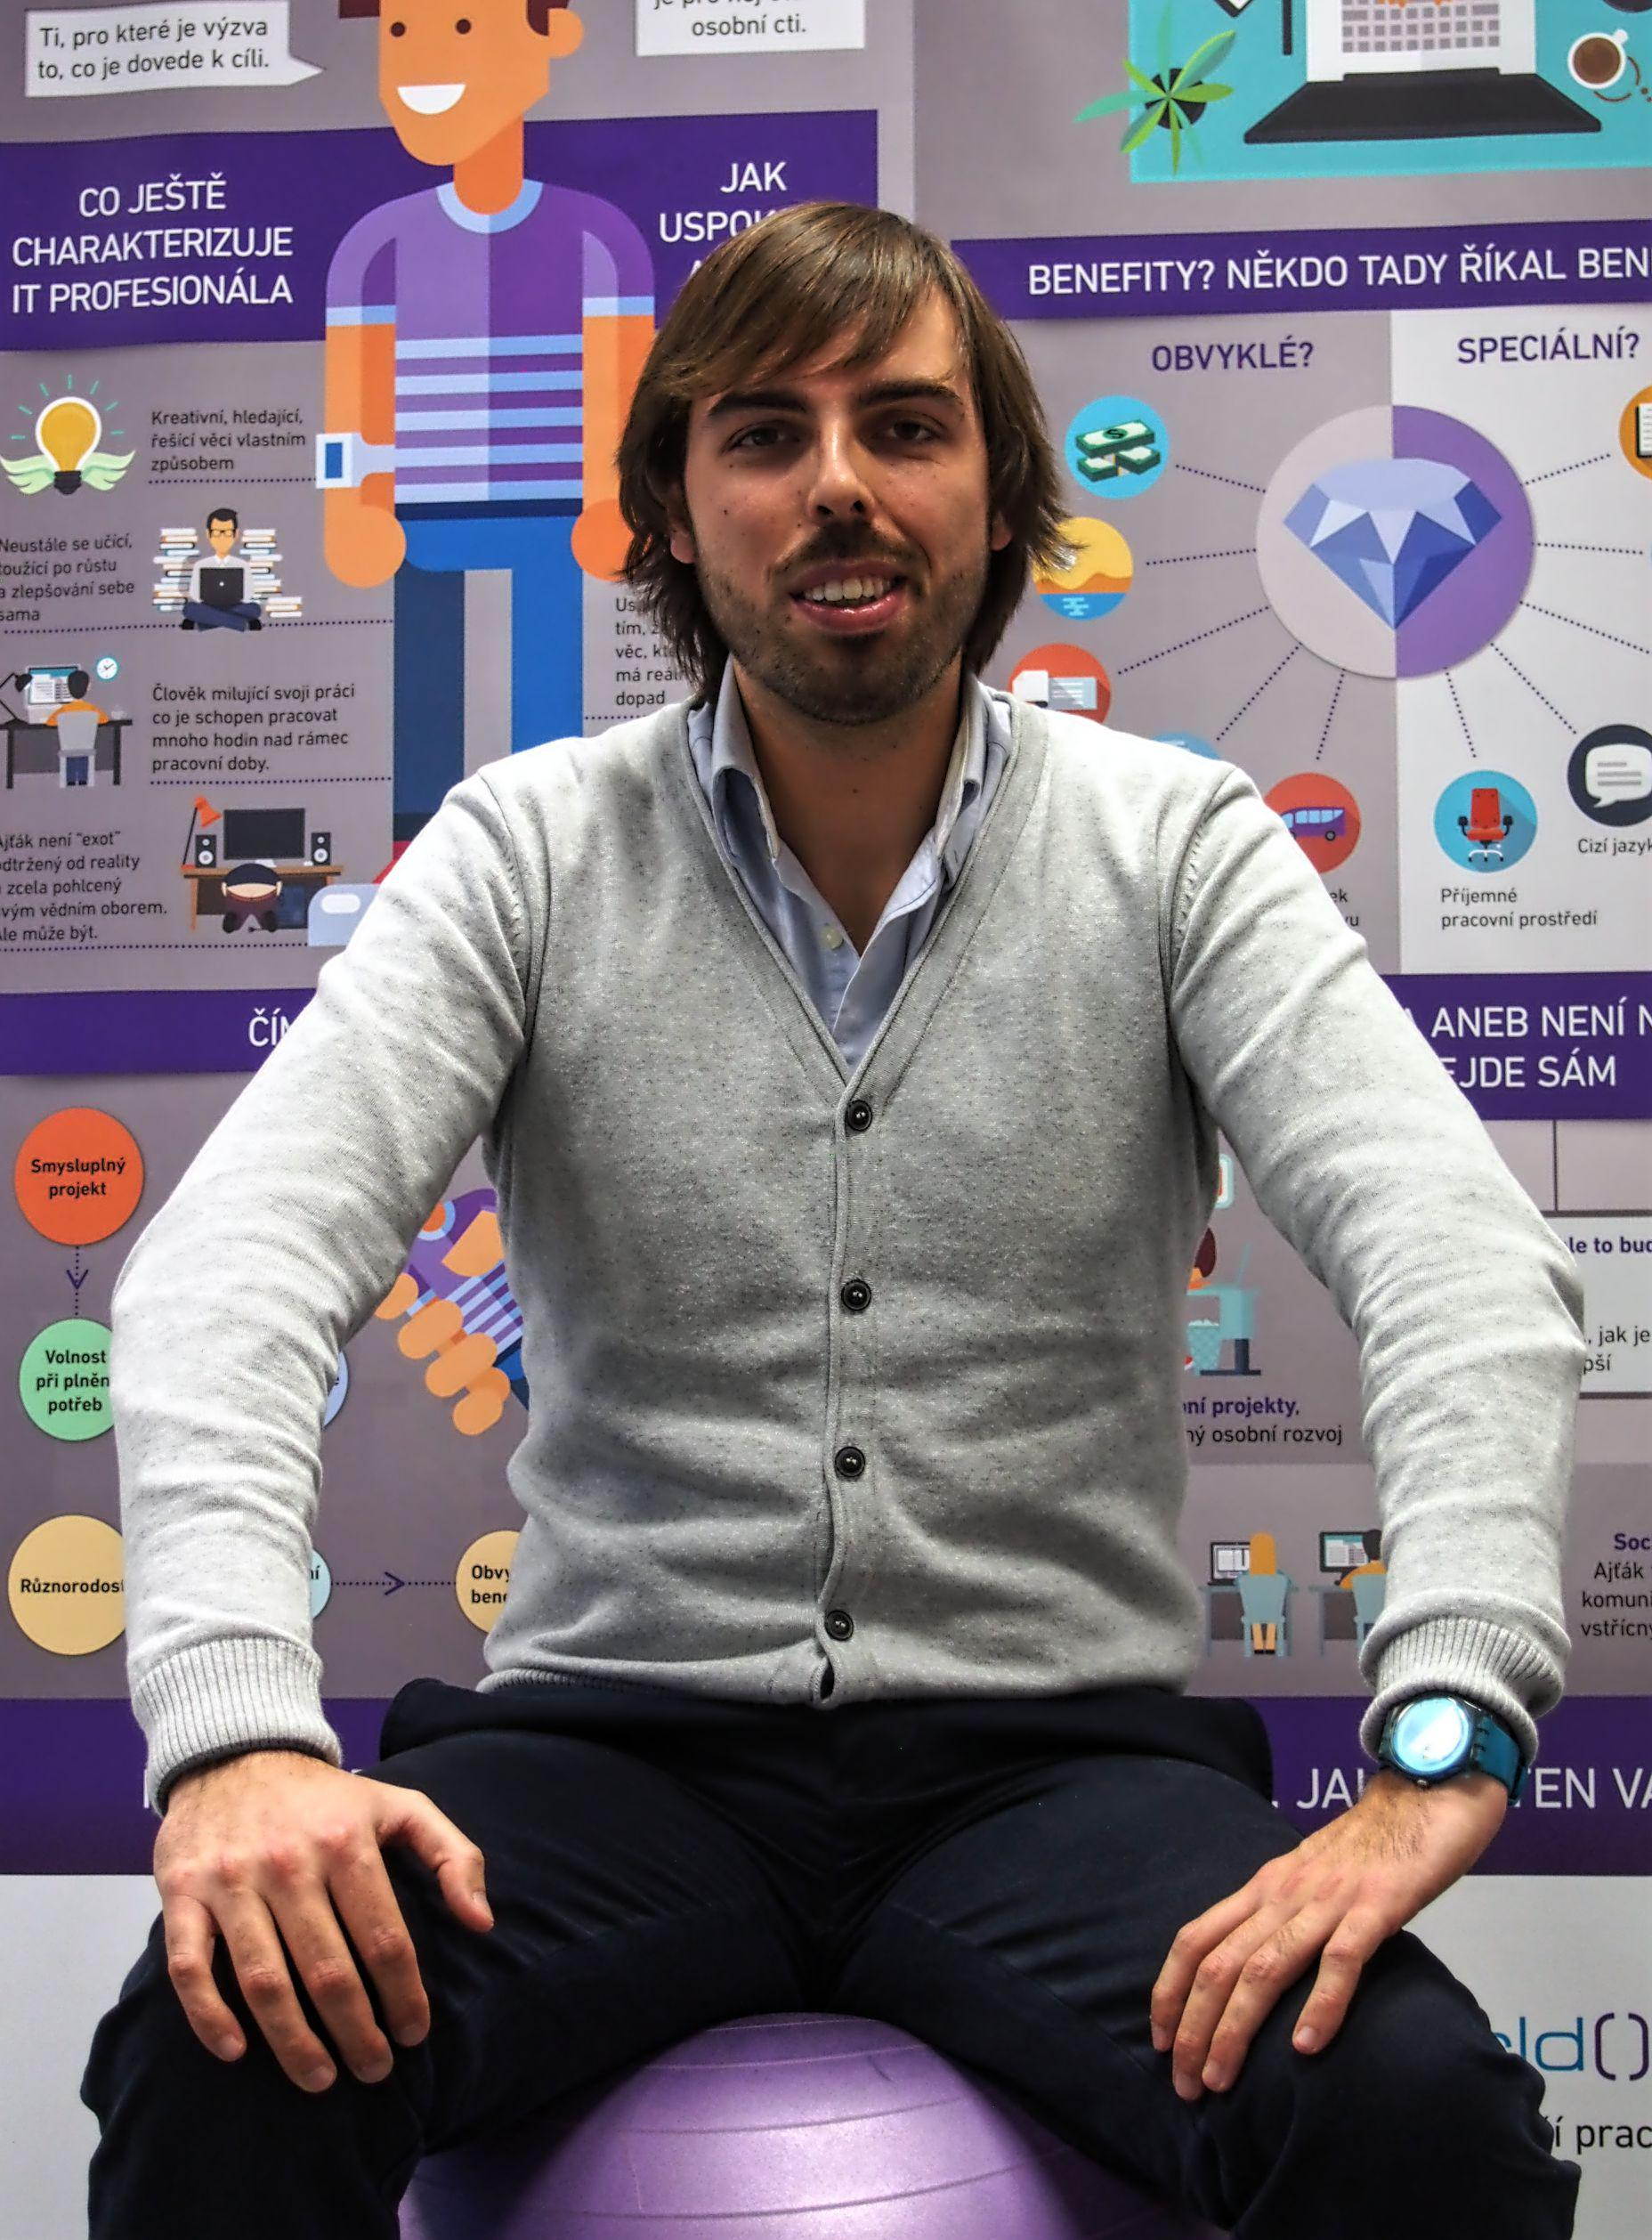 Career story: Diogo Videira, Sourcing Specialist, Monster Career CZ